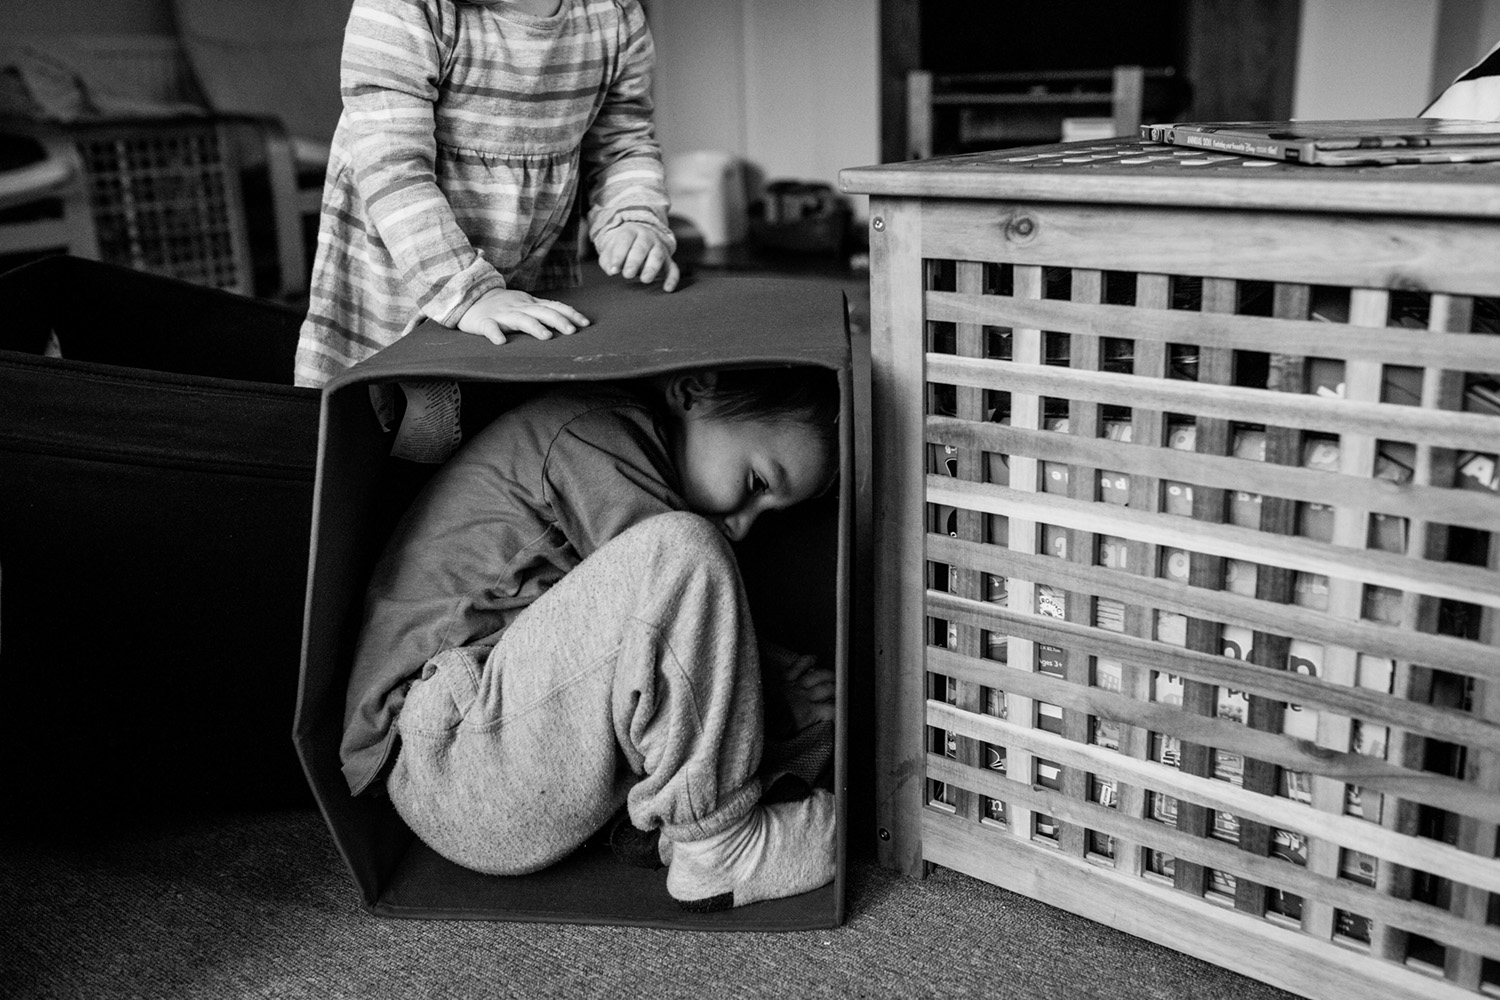 boy trying to fit in a box, on the floor, in an Essex home